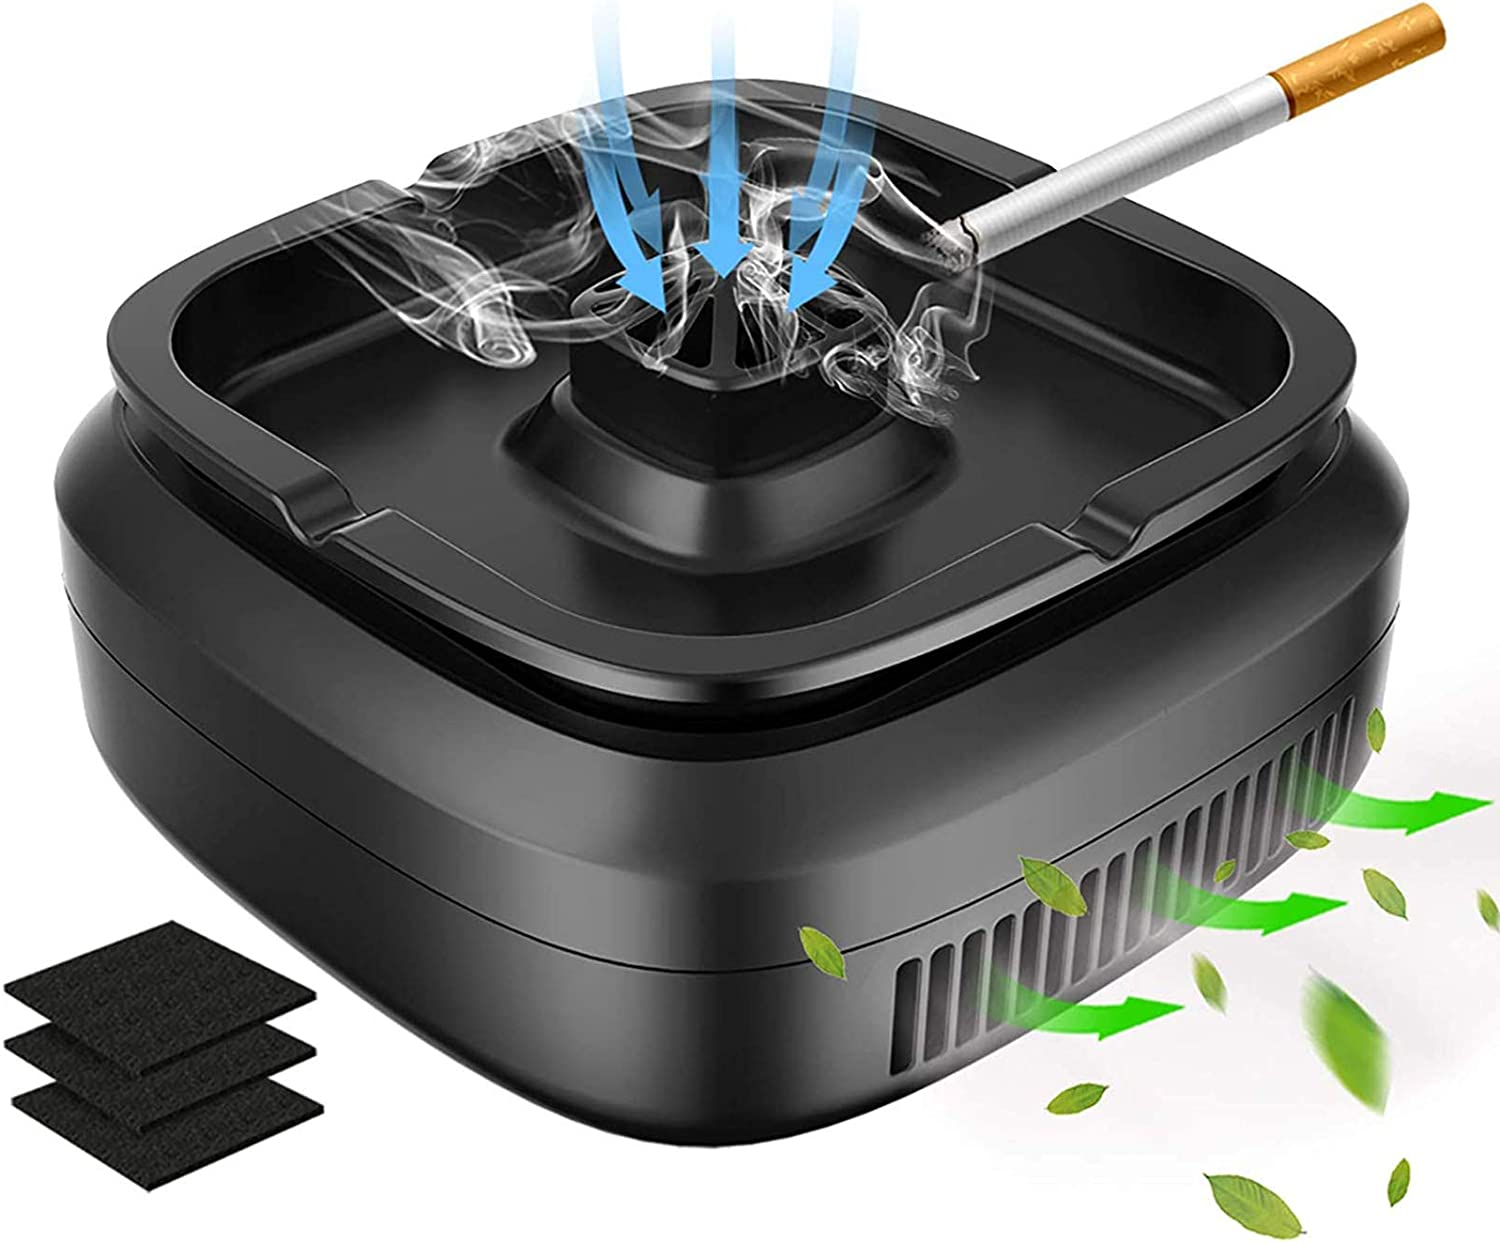 Multifunctional Smokeless Ashtray for Cigarette Smoker, USB Rechargeable Smoke Grabber Ash Tray for Indoor Outdoor Home Office Car, Great for Smoker